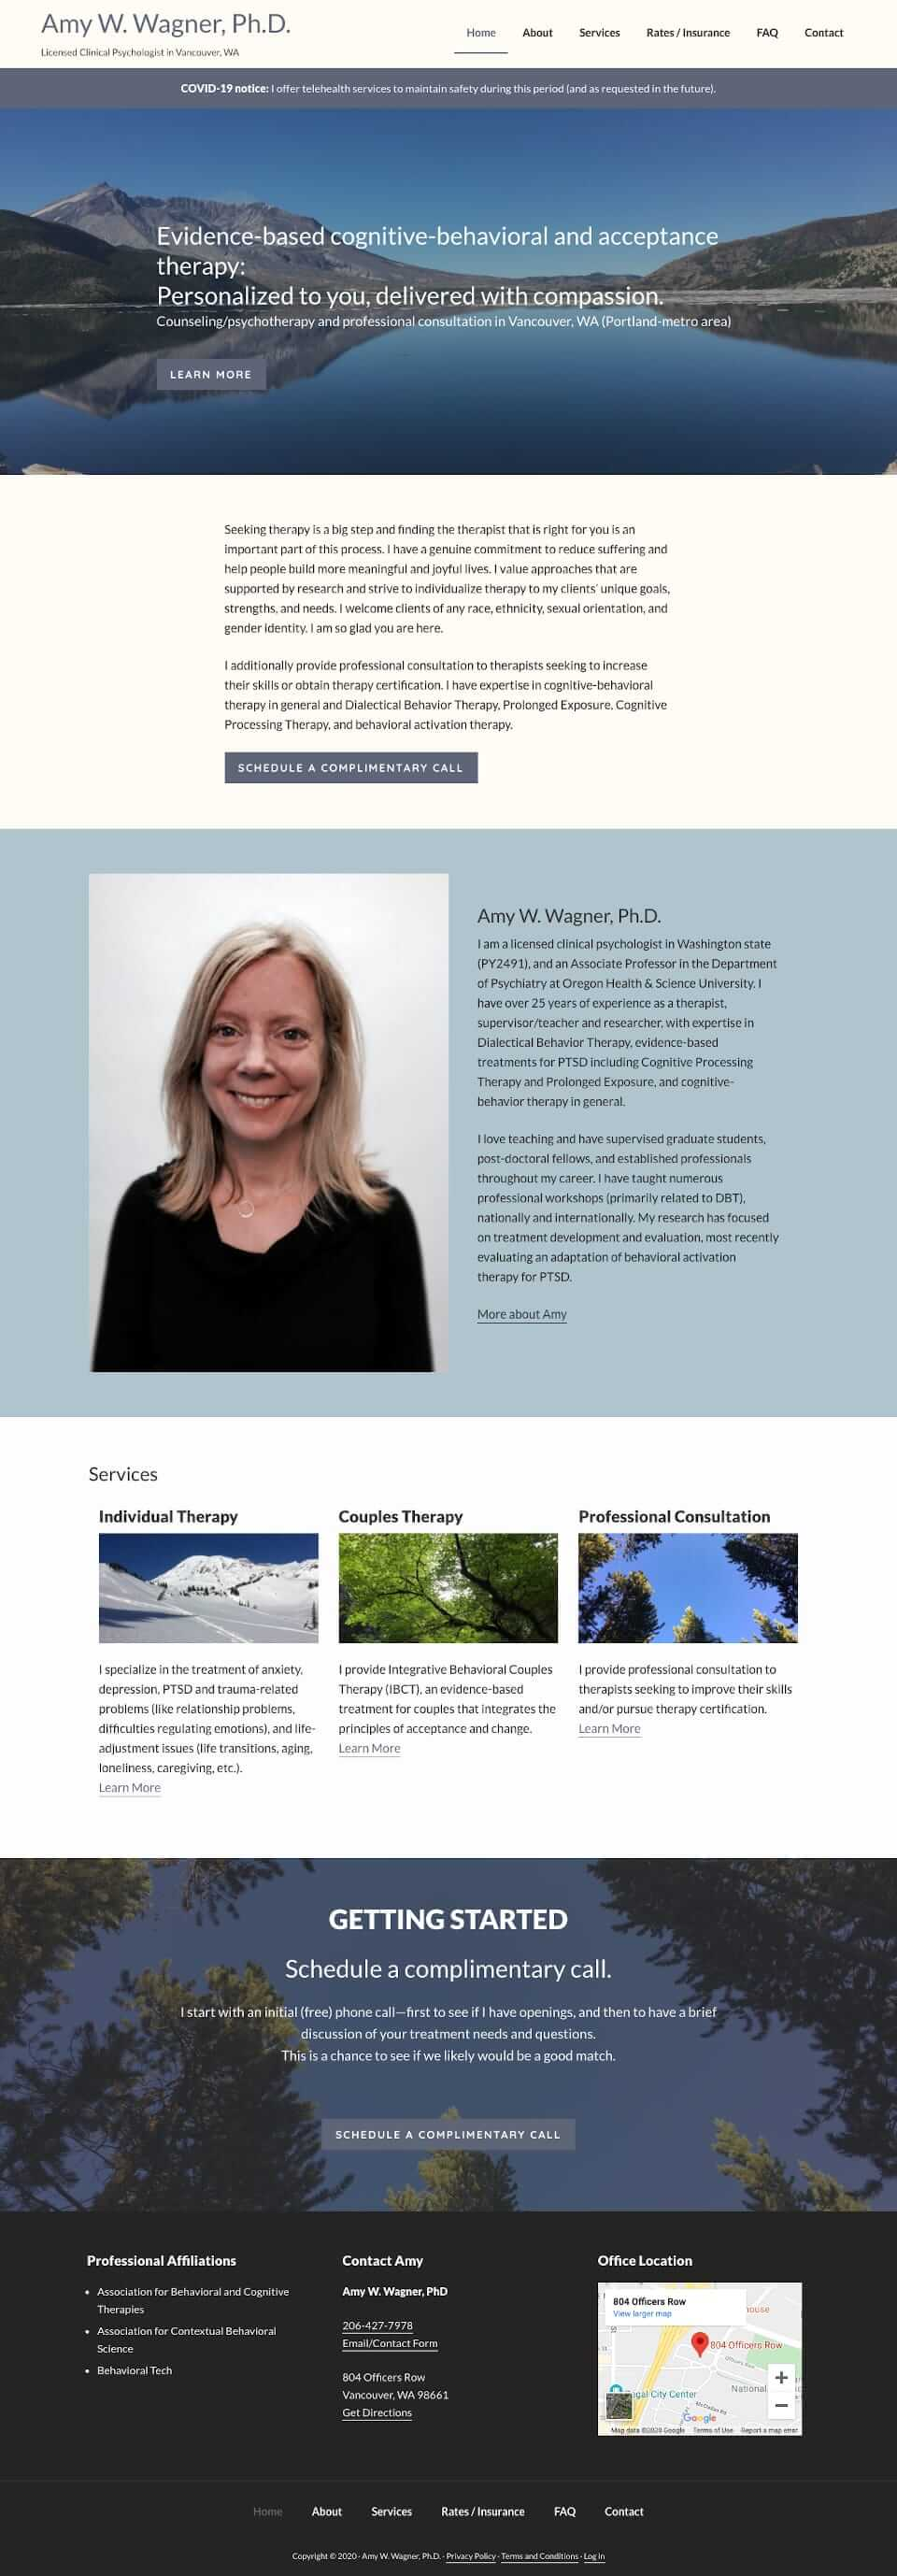 Amy Wagner psychologist website home page